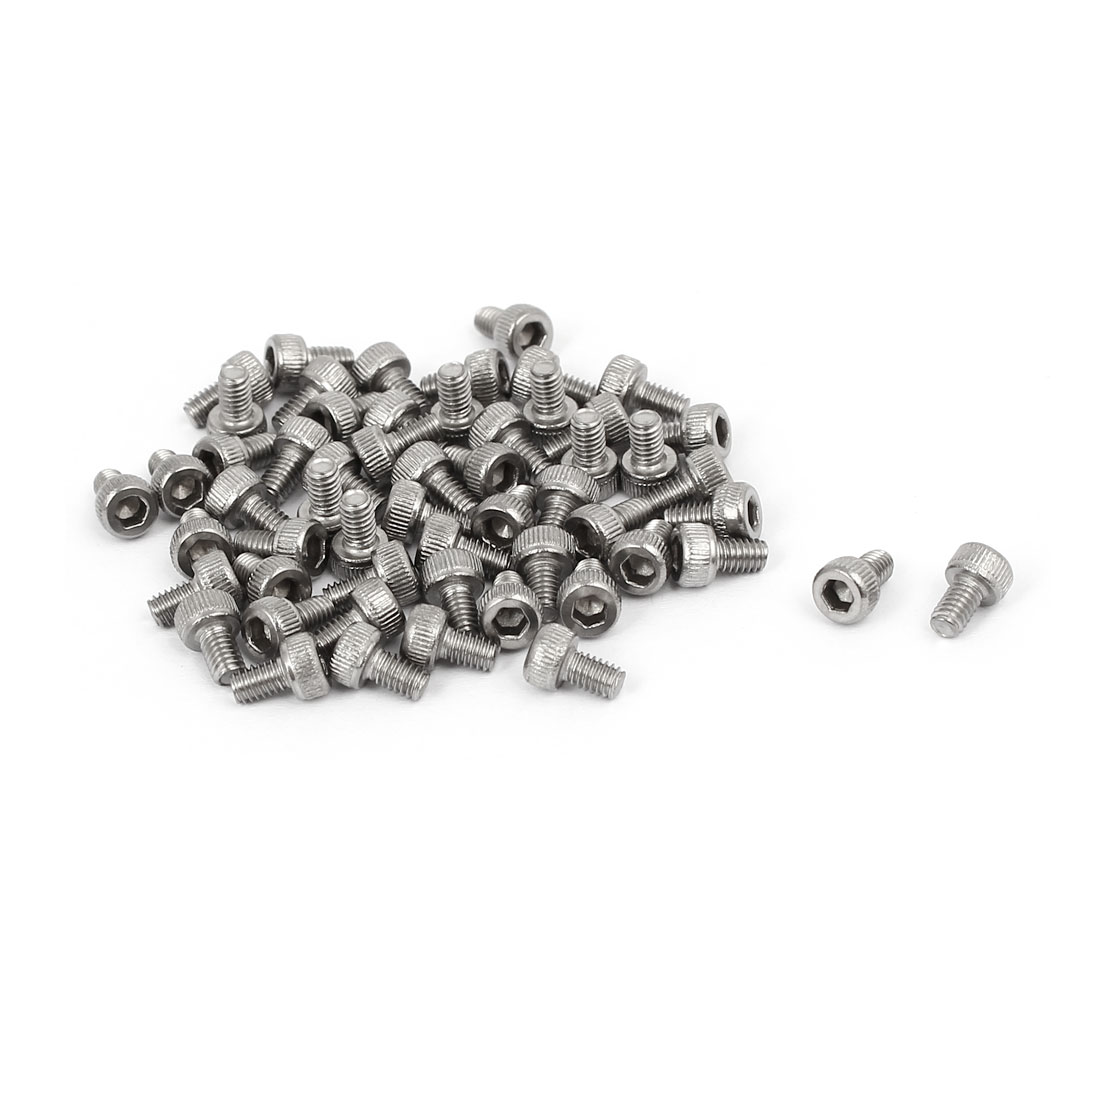 M2.5 x 4mm Thread 304 Stainless Steel Hex Socket Head Cap Screw DIN912 55pcs